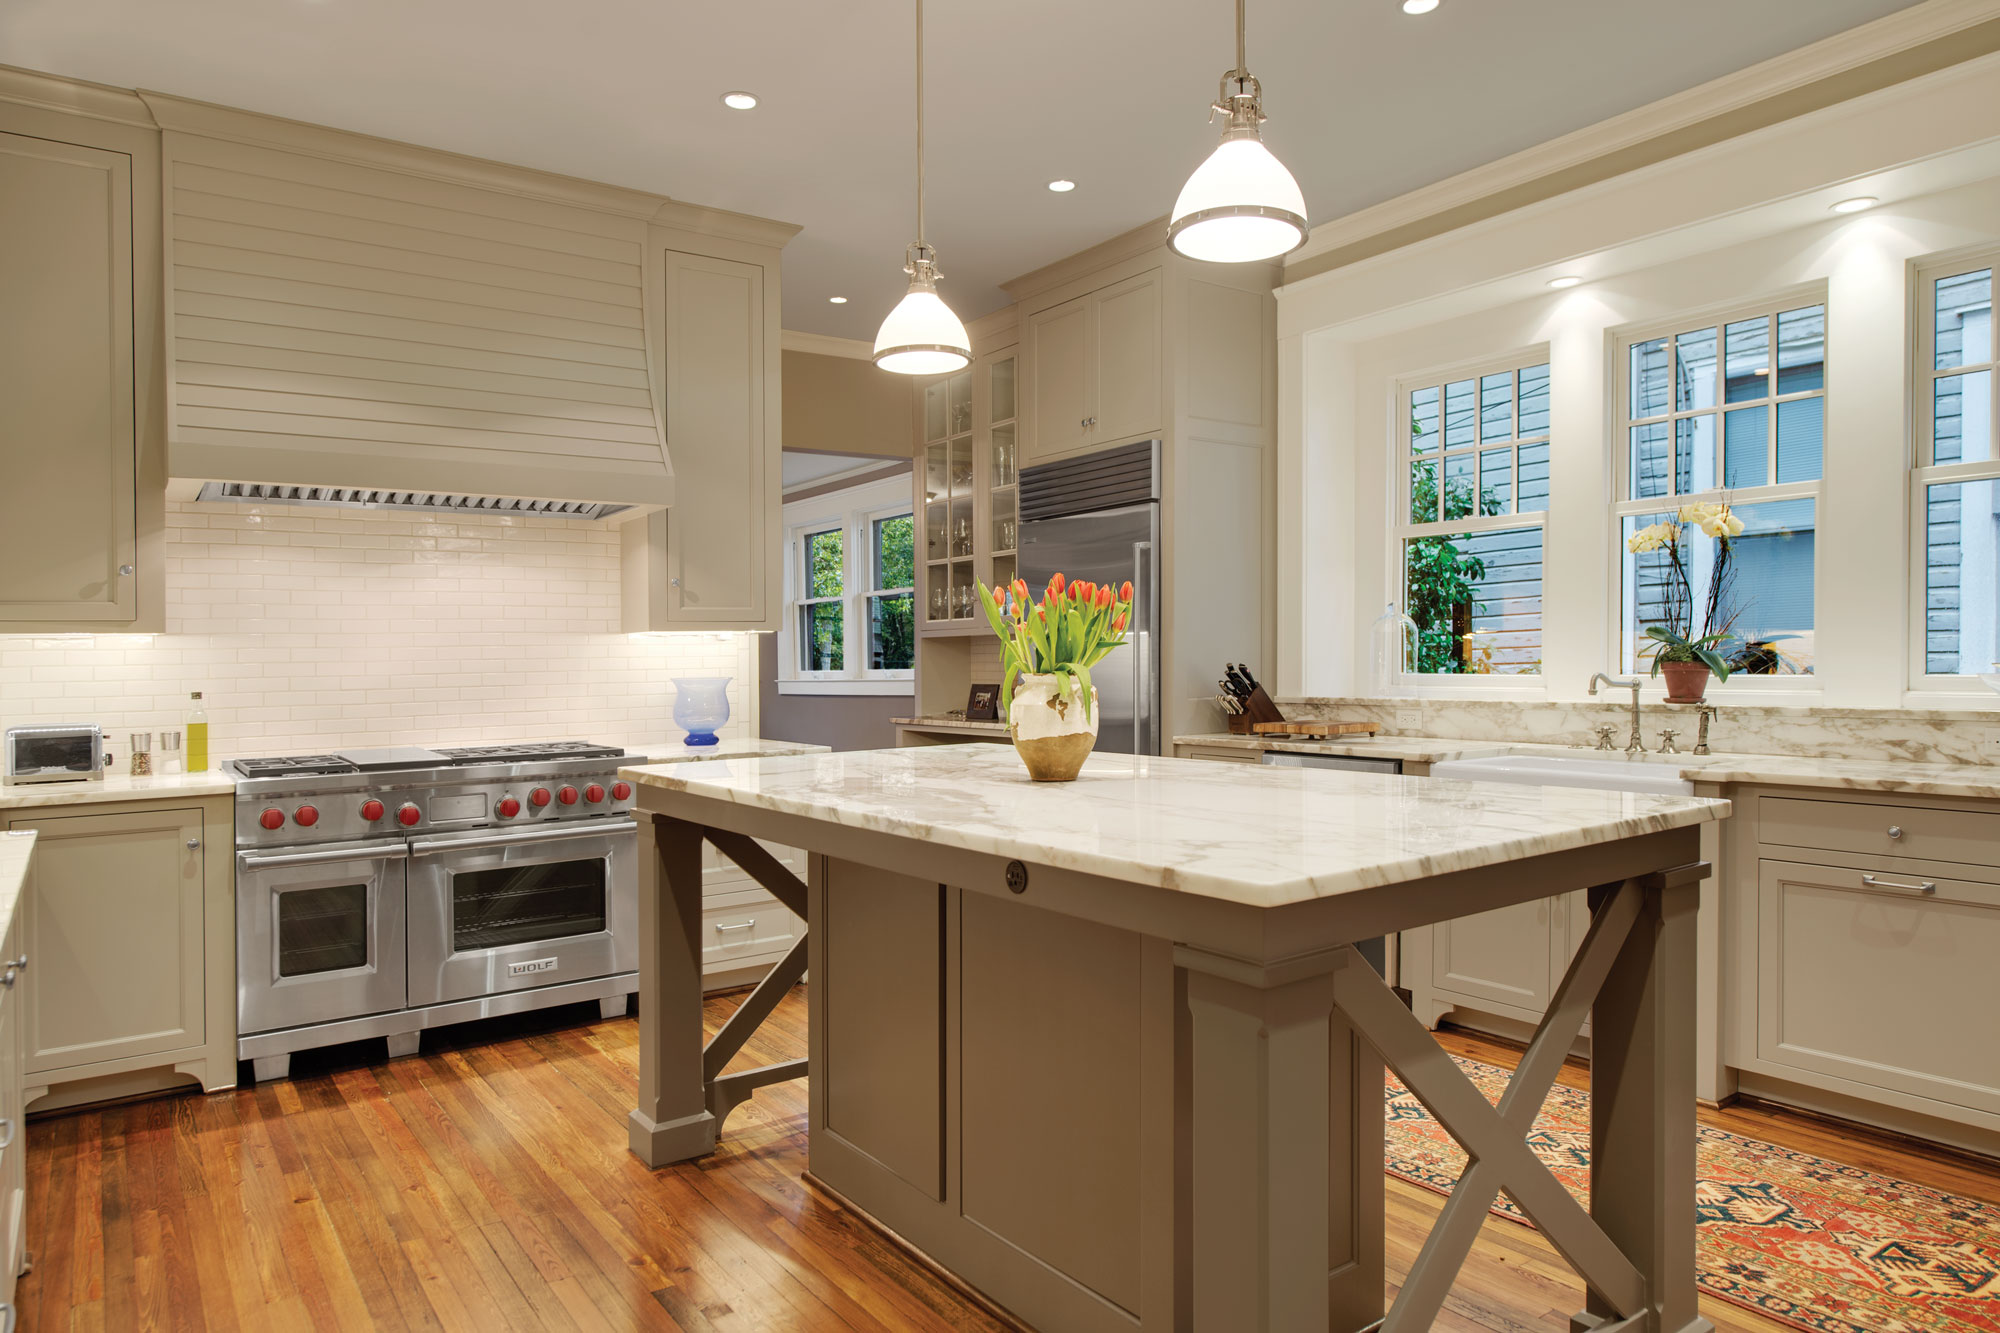 uncategorized kitchen remodel magazine kitchen remodel merges style and utility remodeling awards cabinets windows 2013 design